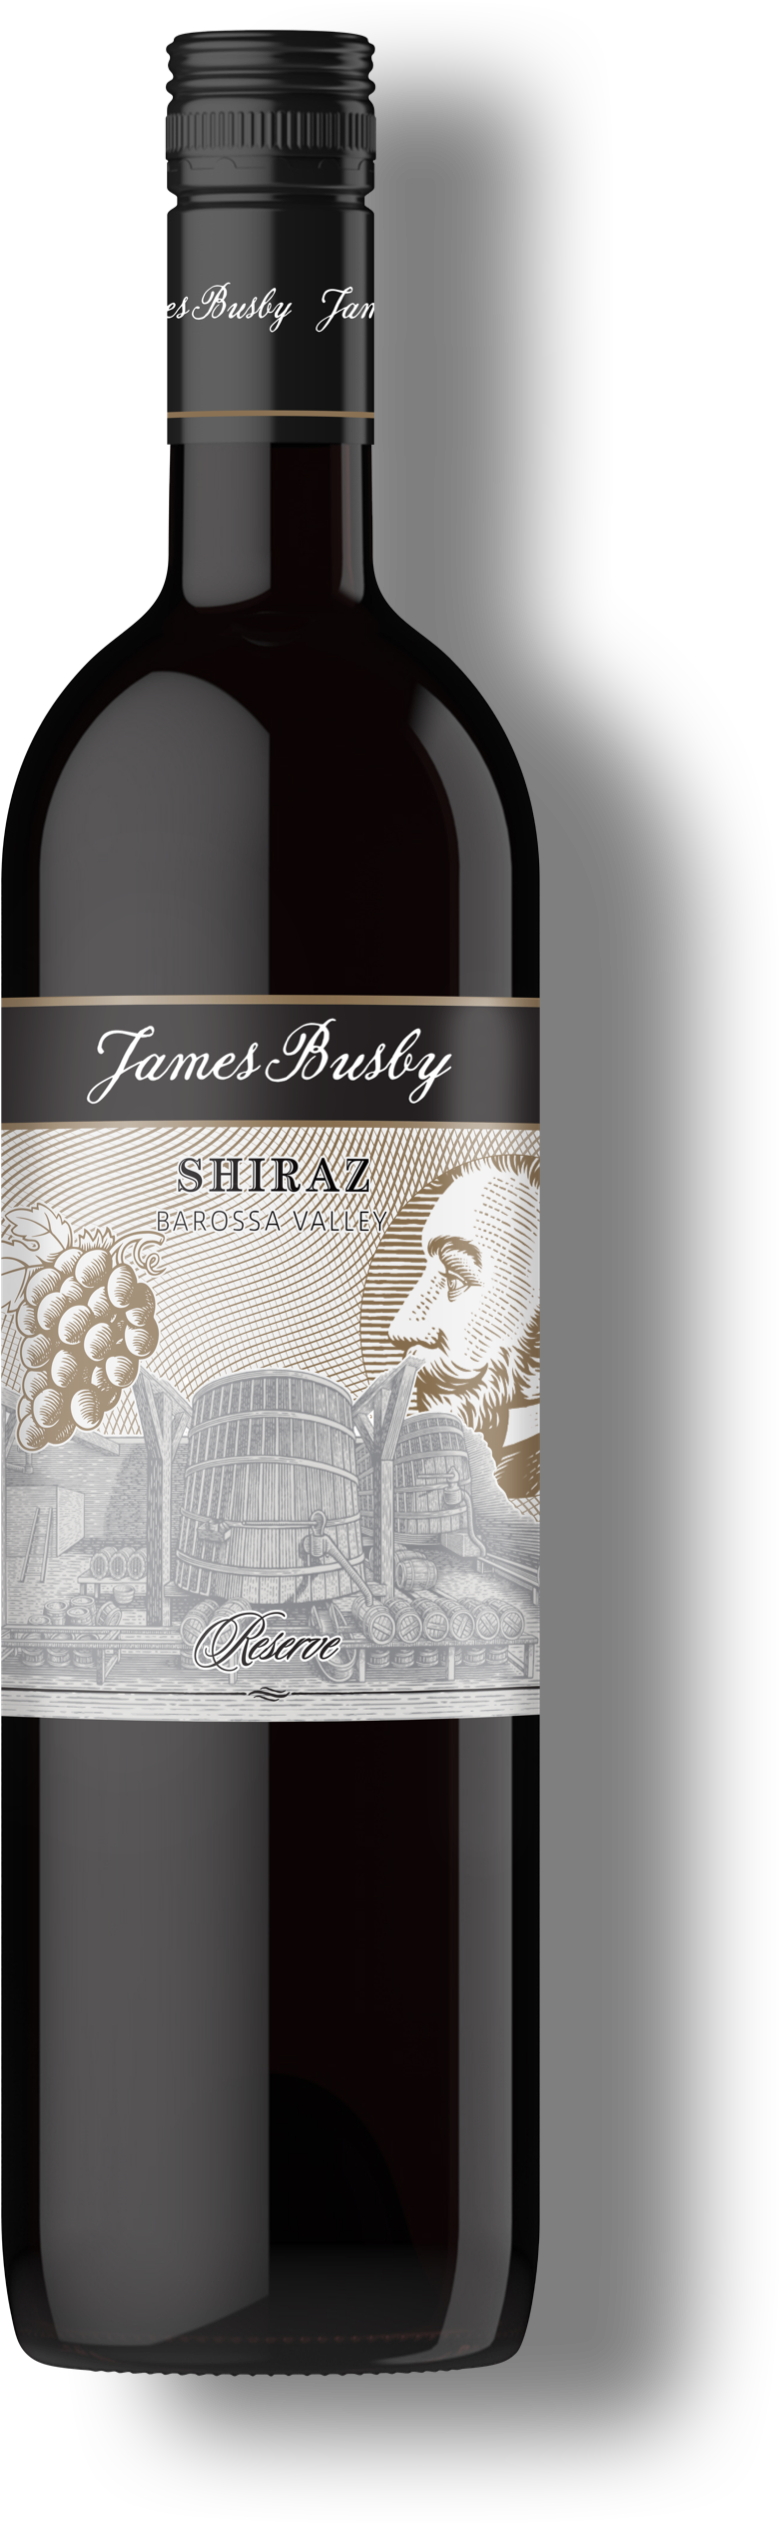 Chapter 2 - Shiraz wine bottle